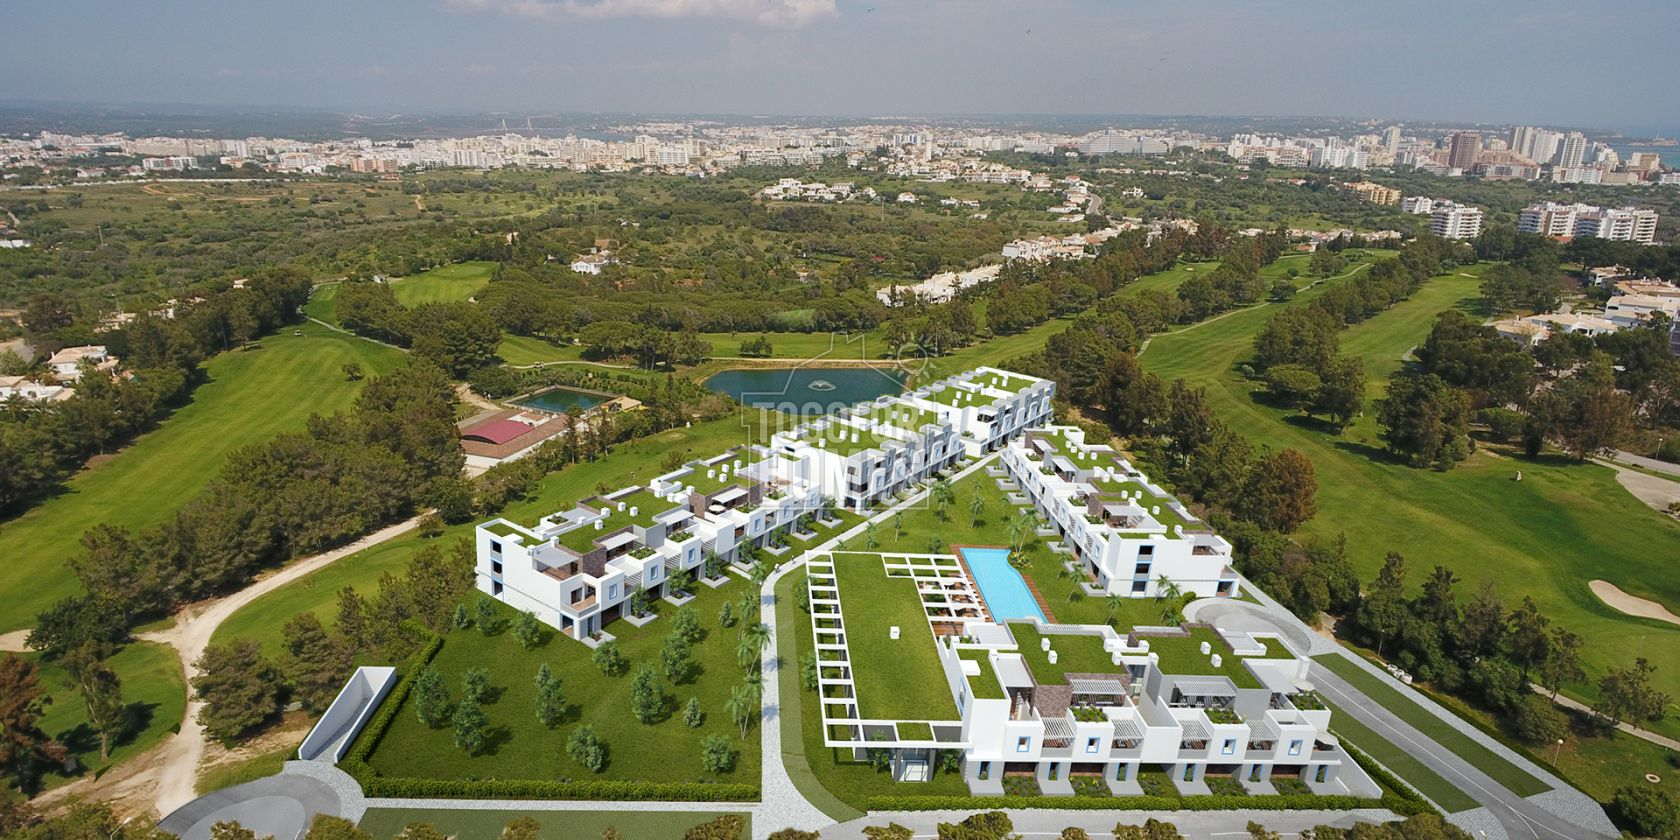 LG1233 - Off-plan 1 bedroom apartments in premier golf resort